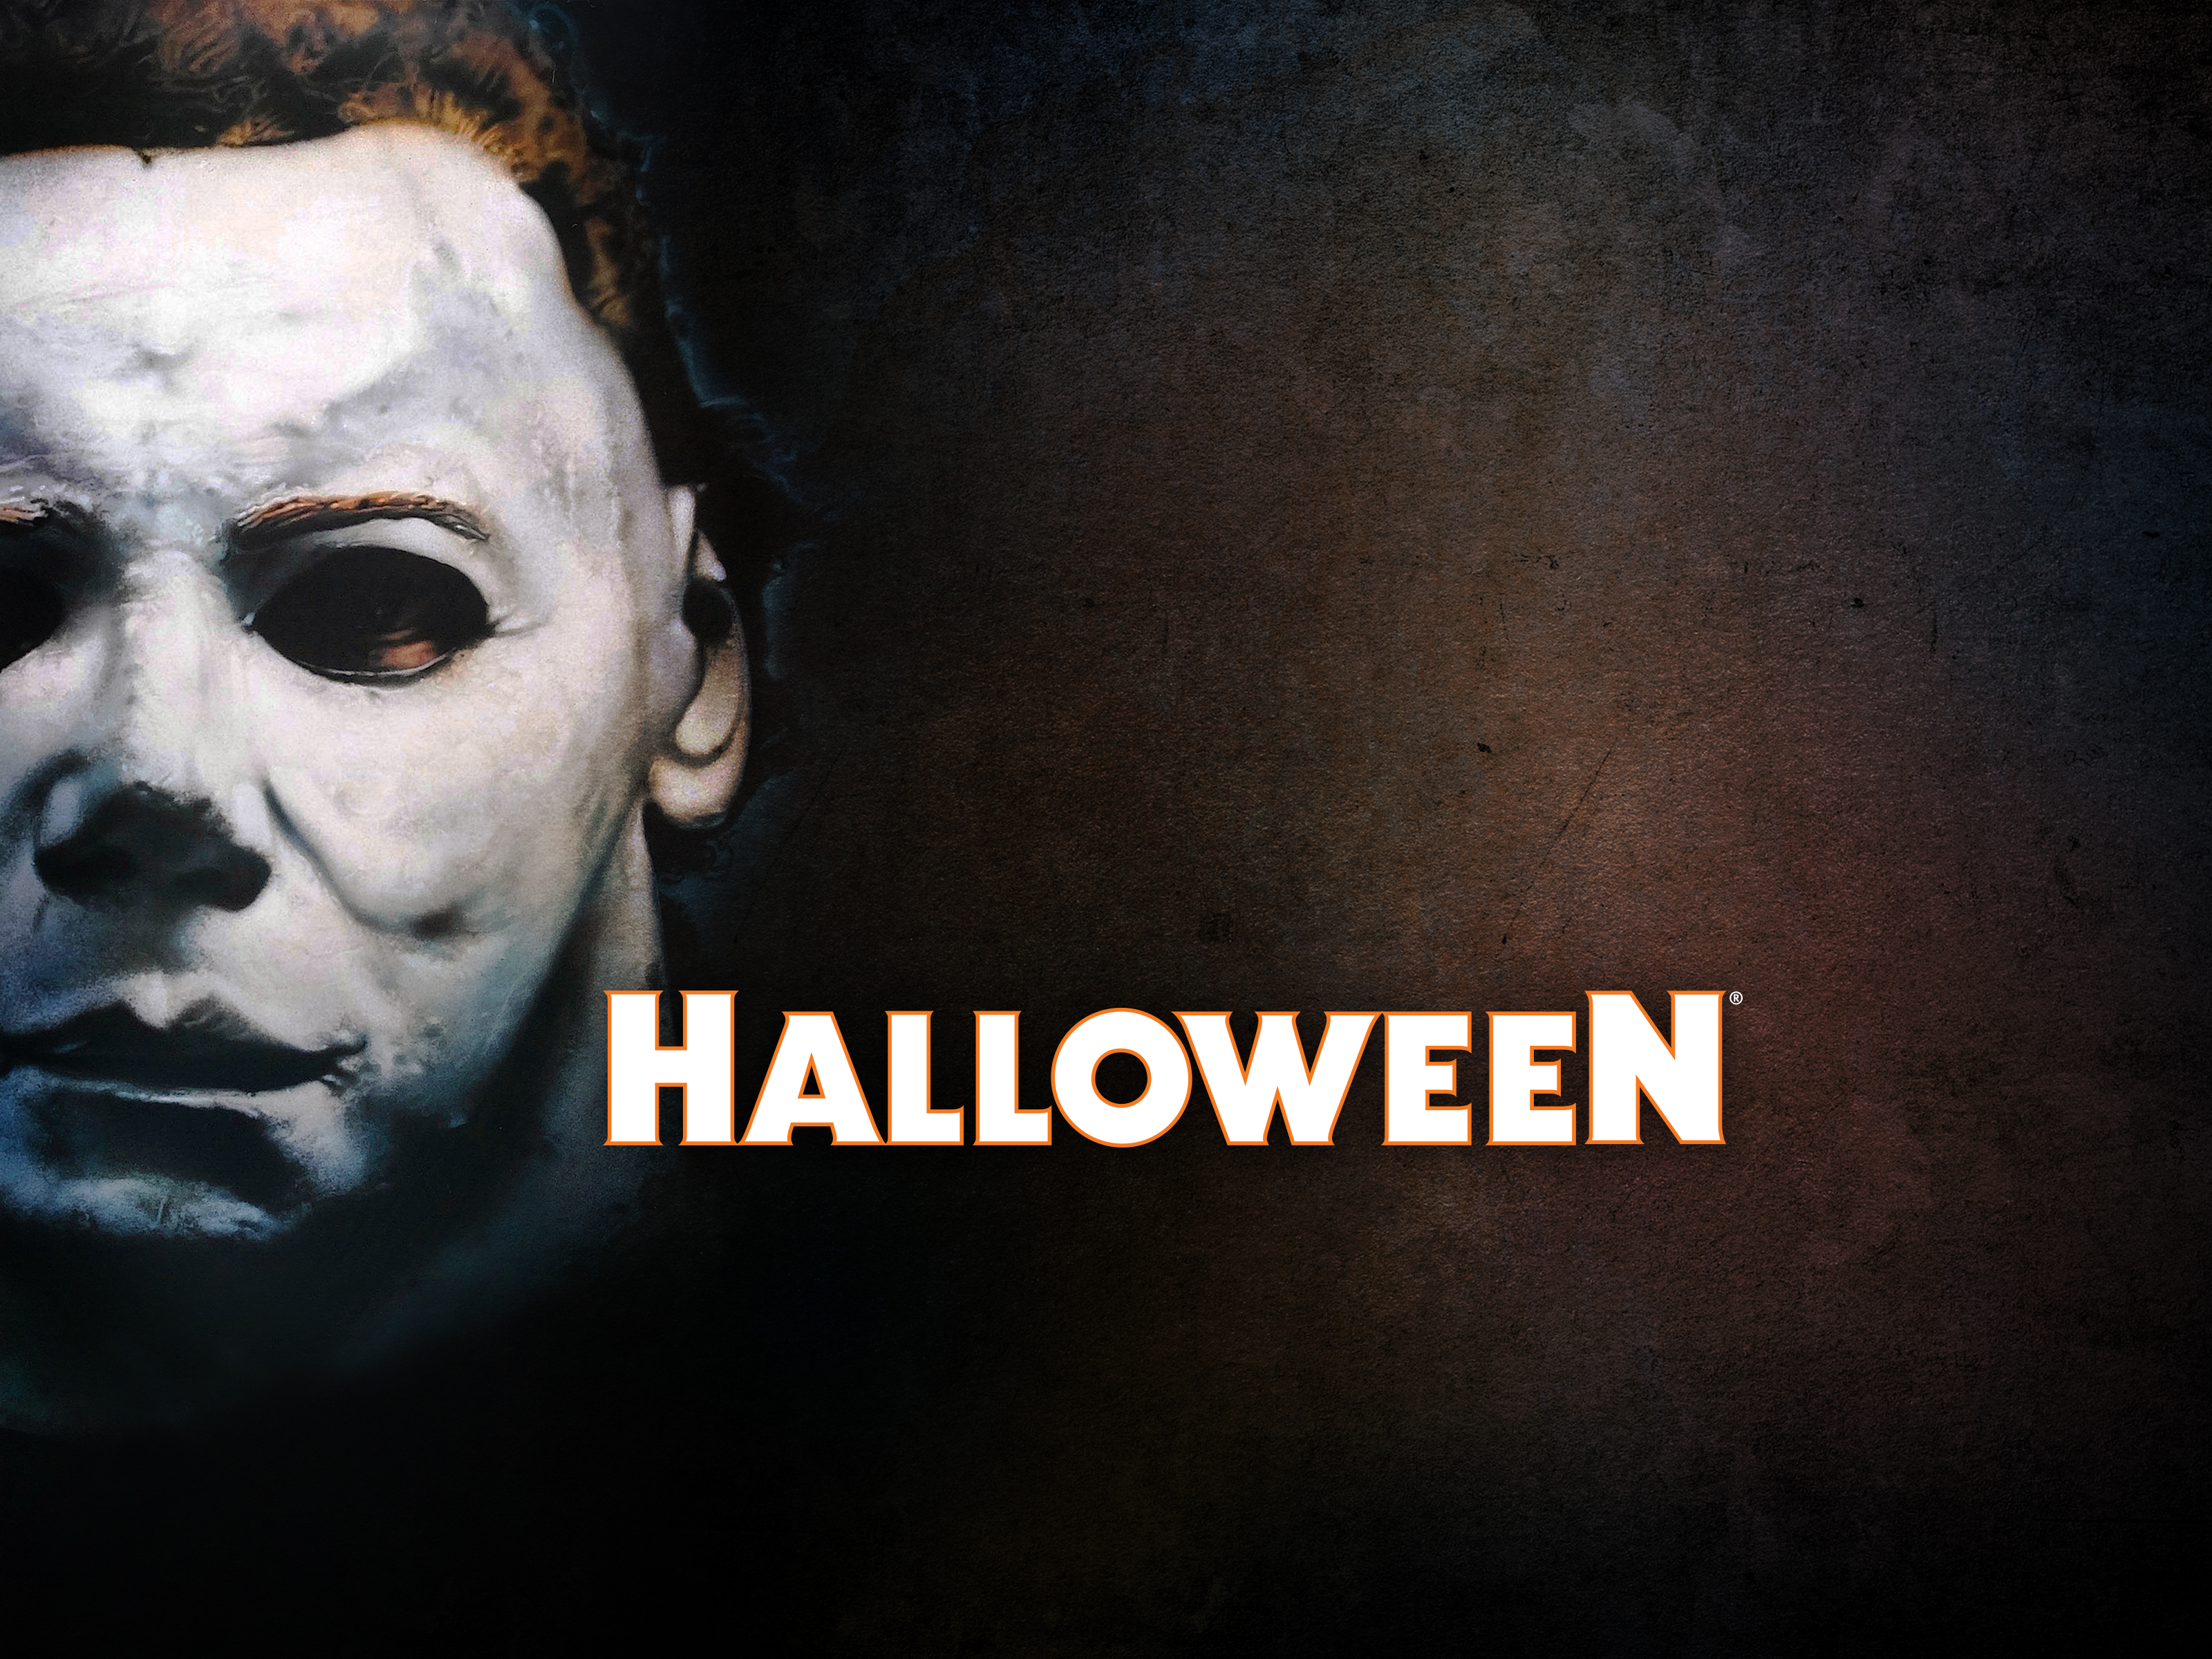 Group Of Michael Myers Halloween Movie Wallpaper